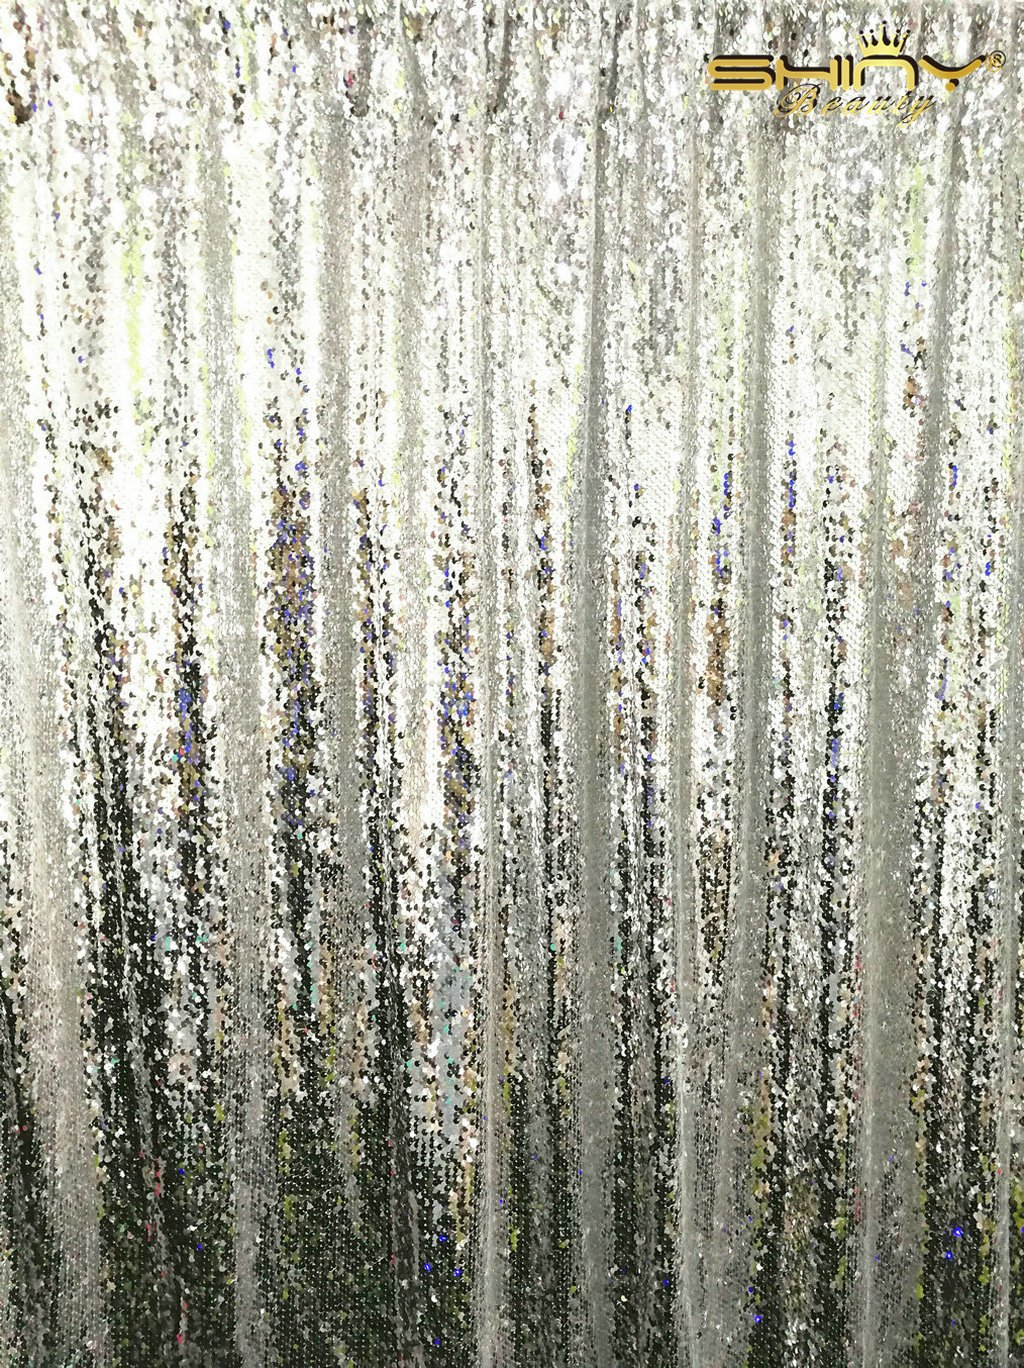 ShinyBeauty 8FTx8FT-Mermaid-Silver-Sequin Curtain Backdrop,Reversible Sequin Fabirc Photography Backdrops For Photo/Wedding/Party/Event/Prom/Birthday by ShinyBeauty